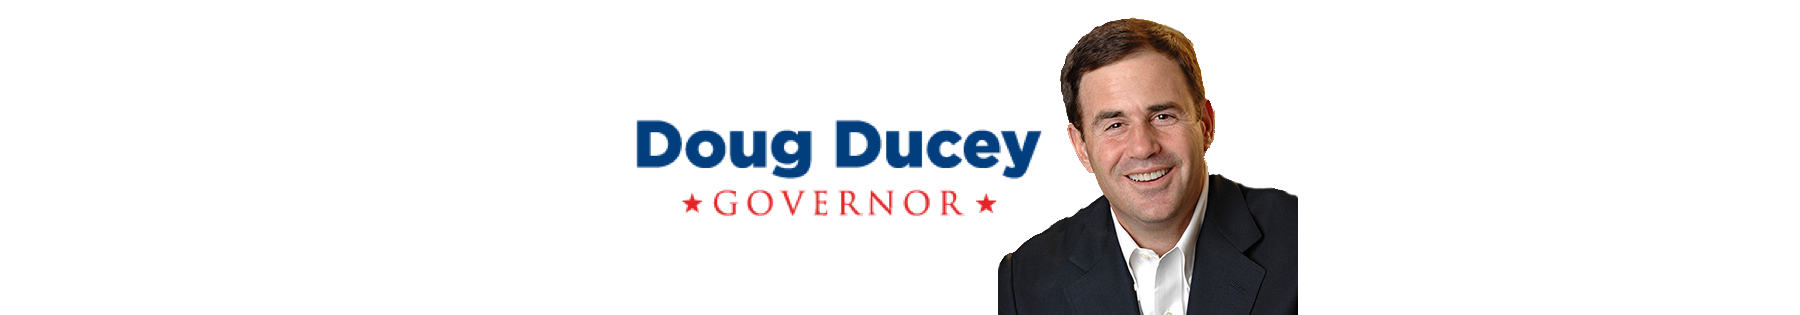 Ducey 2018: Election Fund